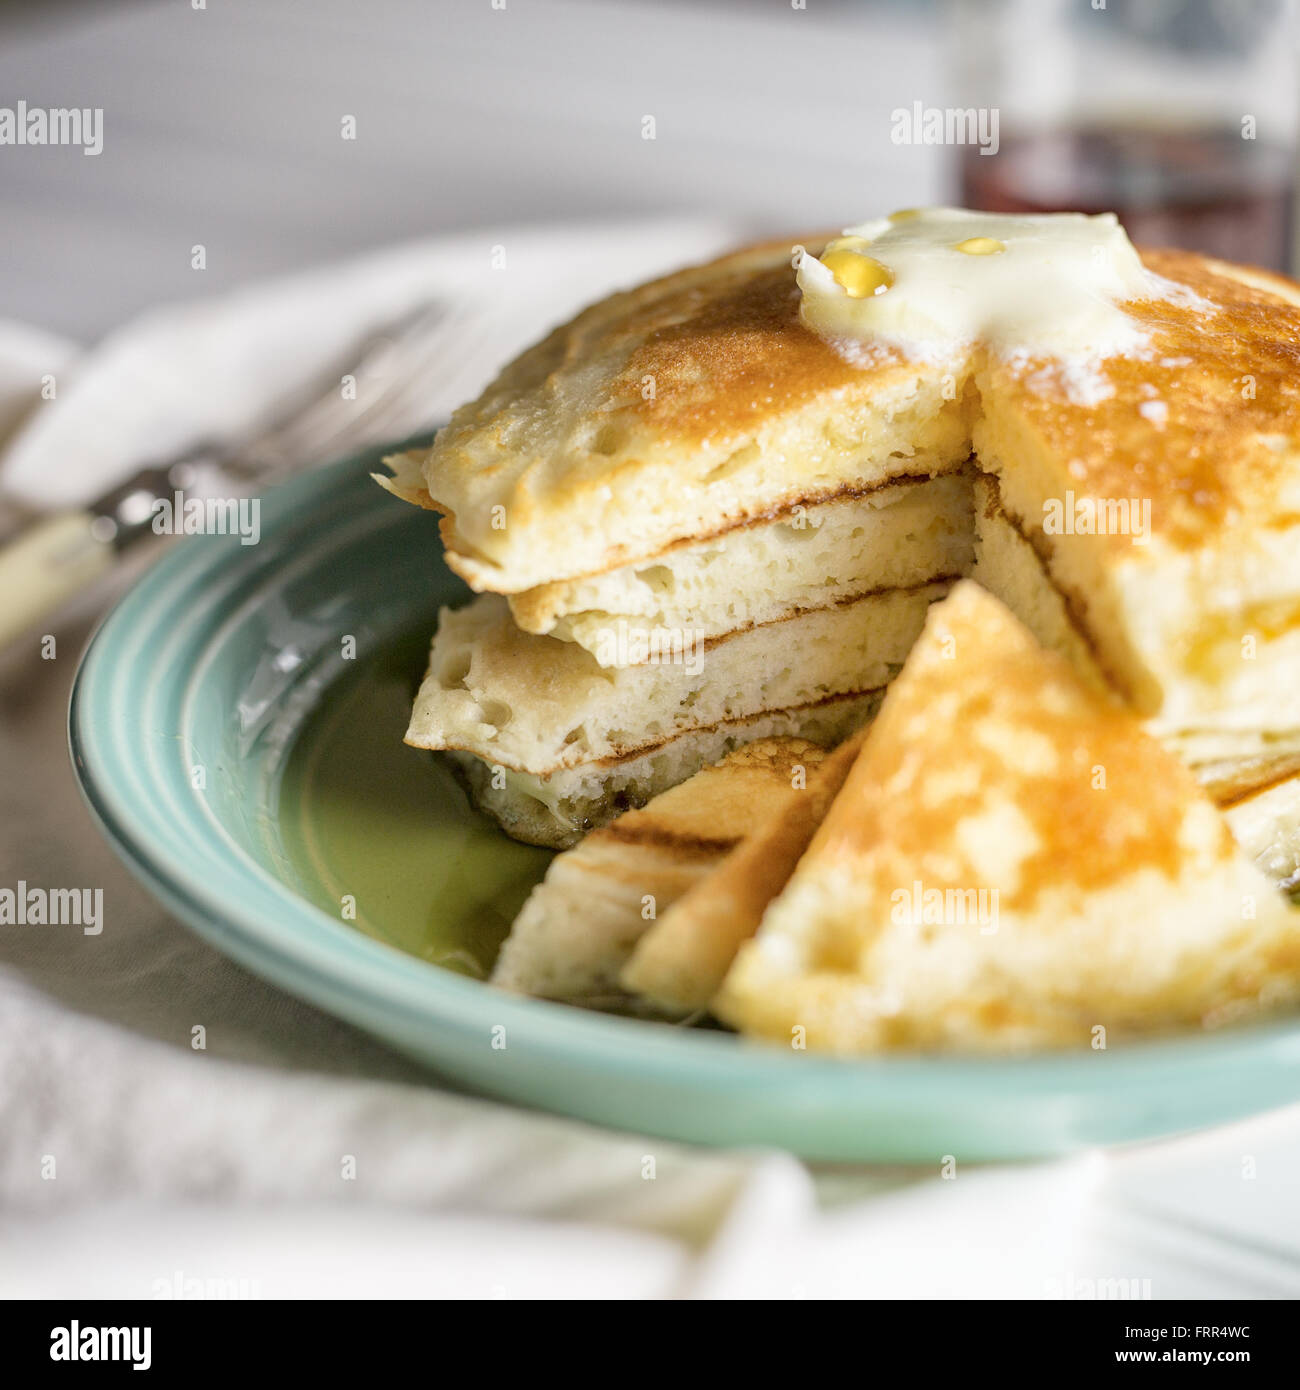 A small stack of sliced pancakes with butter and syrup. Stock Photo